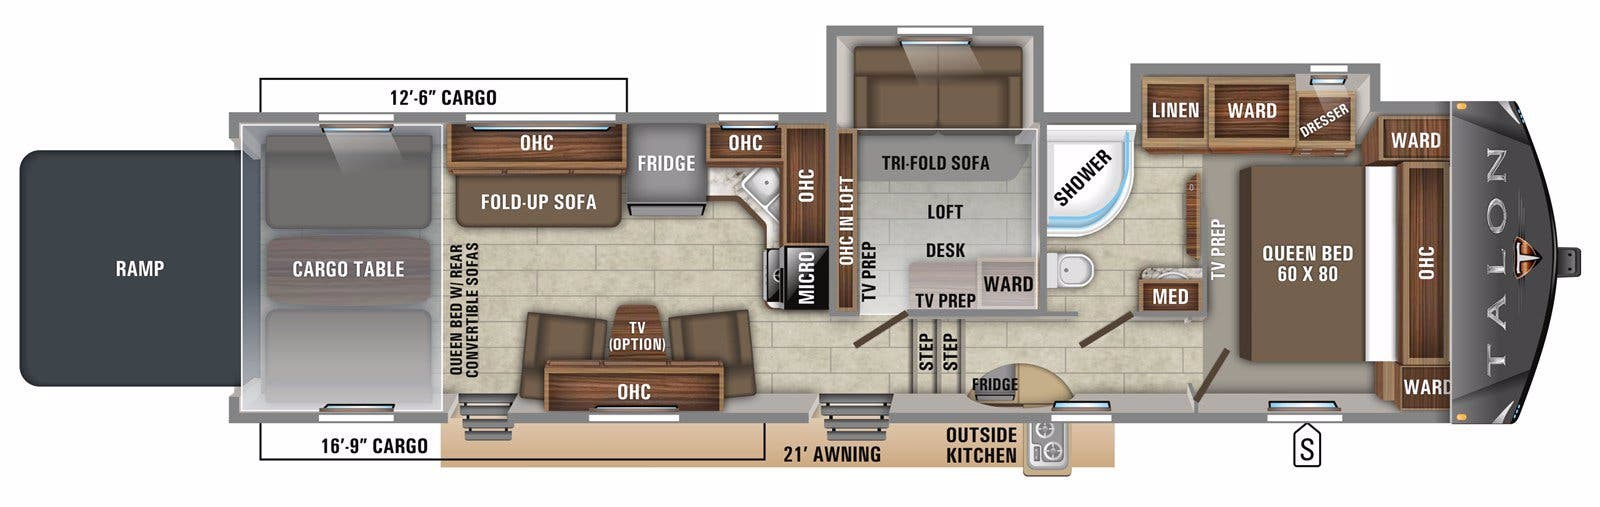 2019_jayco_talon_floorplan